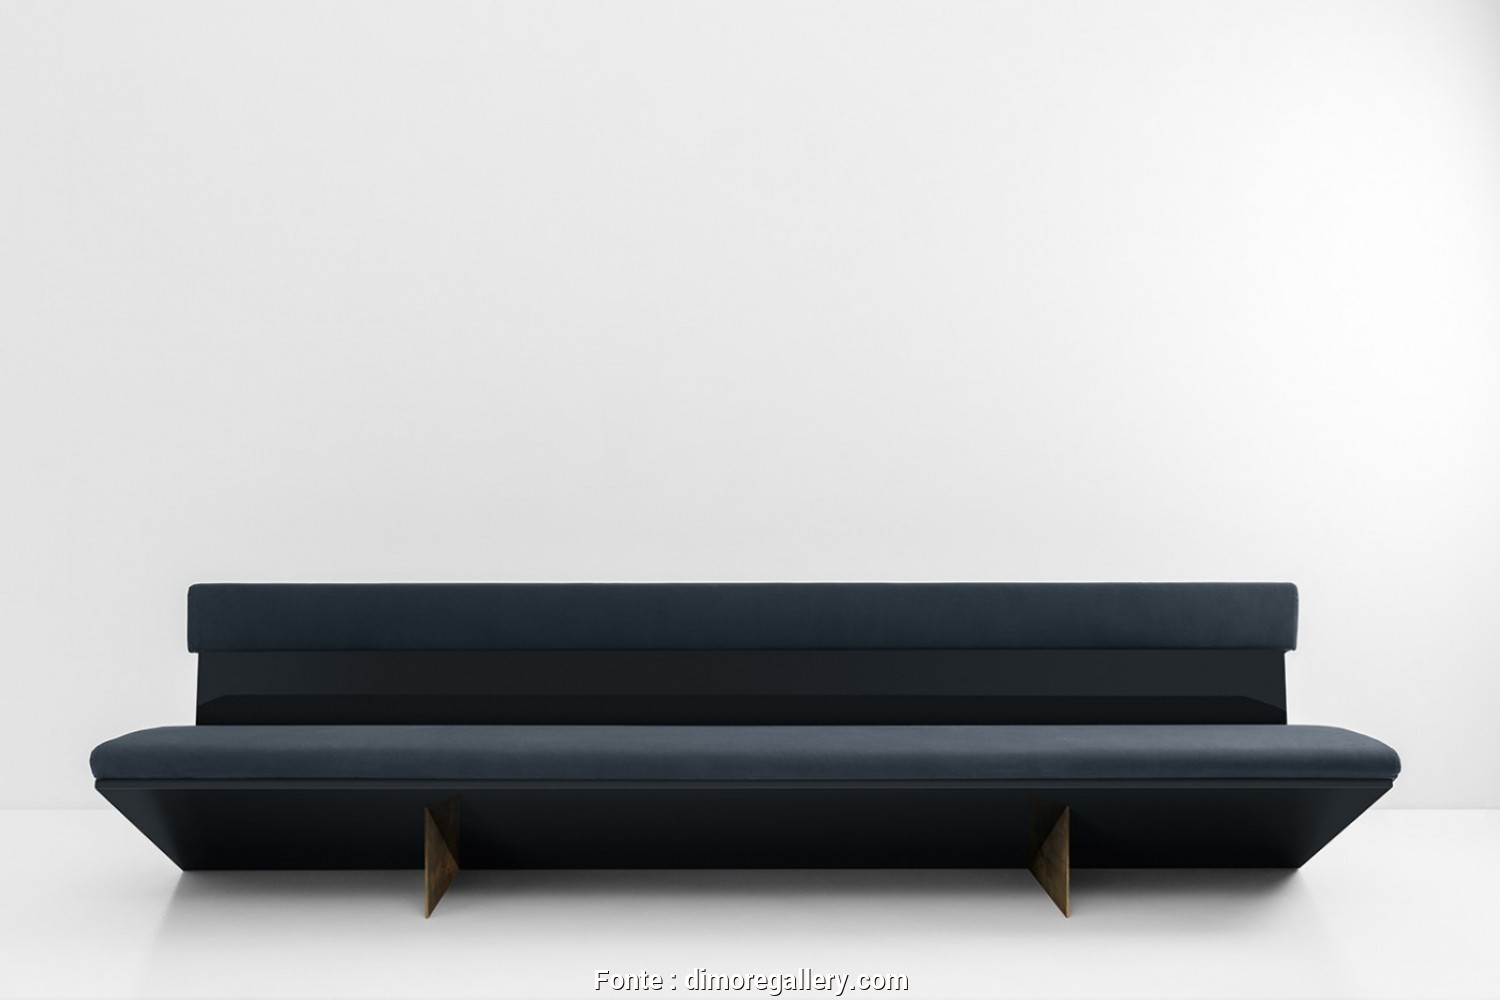 Divano Au Yemen, Costoso Sofa With Curved Structure In Glossy Lacquered Wood, Legs In Oxidised Brass. Cushion Padded With Polyurethane Foam, Upholstered In Fabric